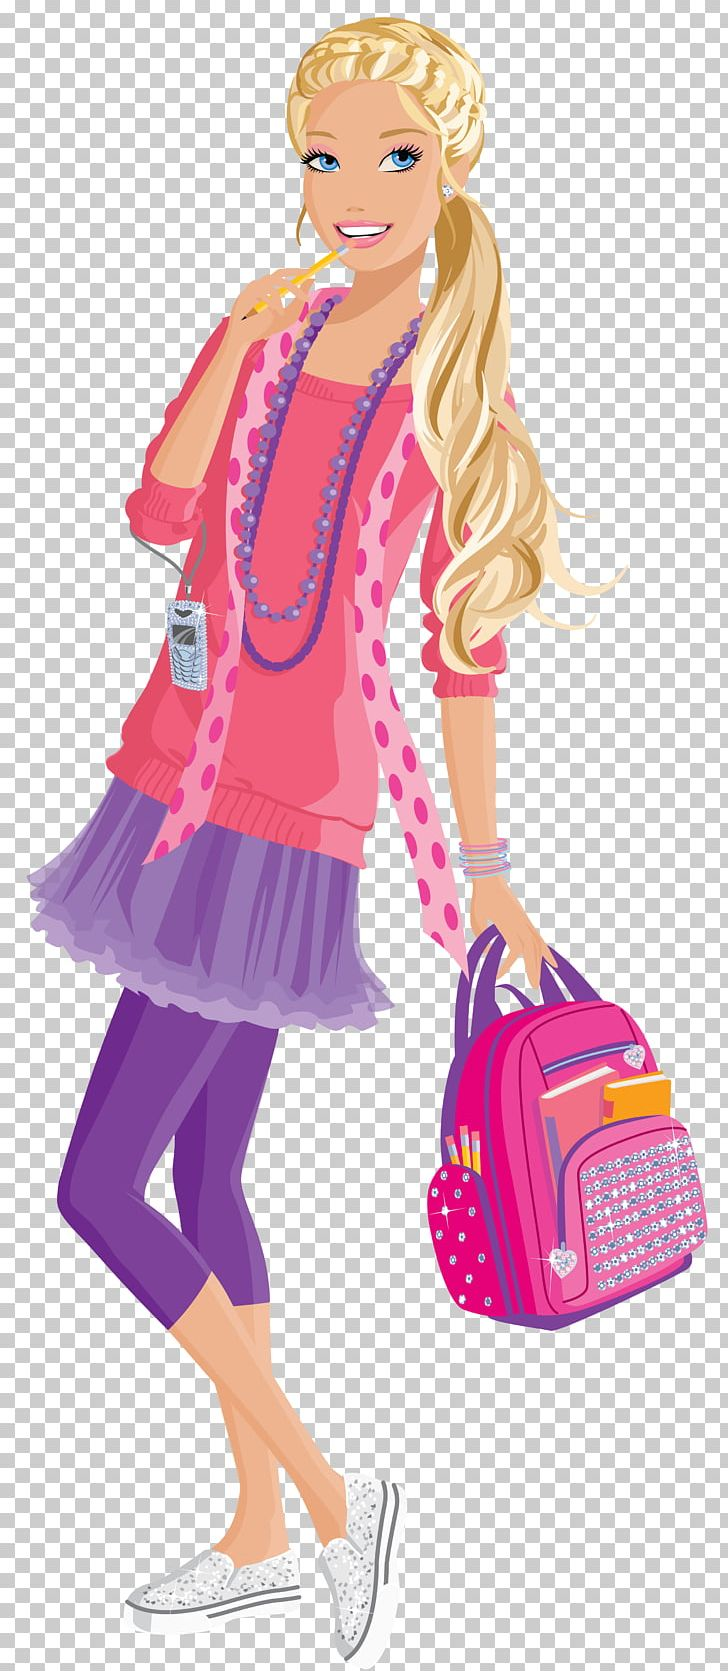 Barbie: The Princess & The Popstar Doll PNG, Clipart, Art, Barbie.